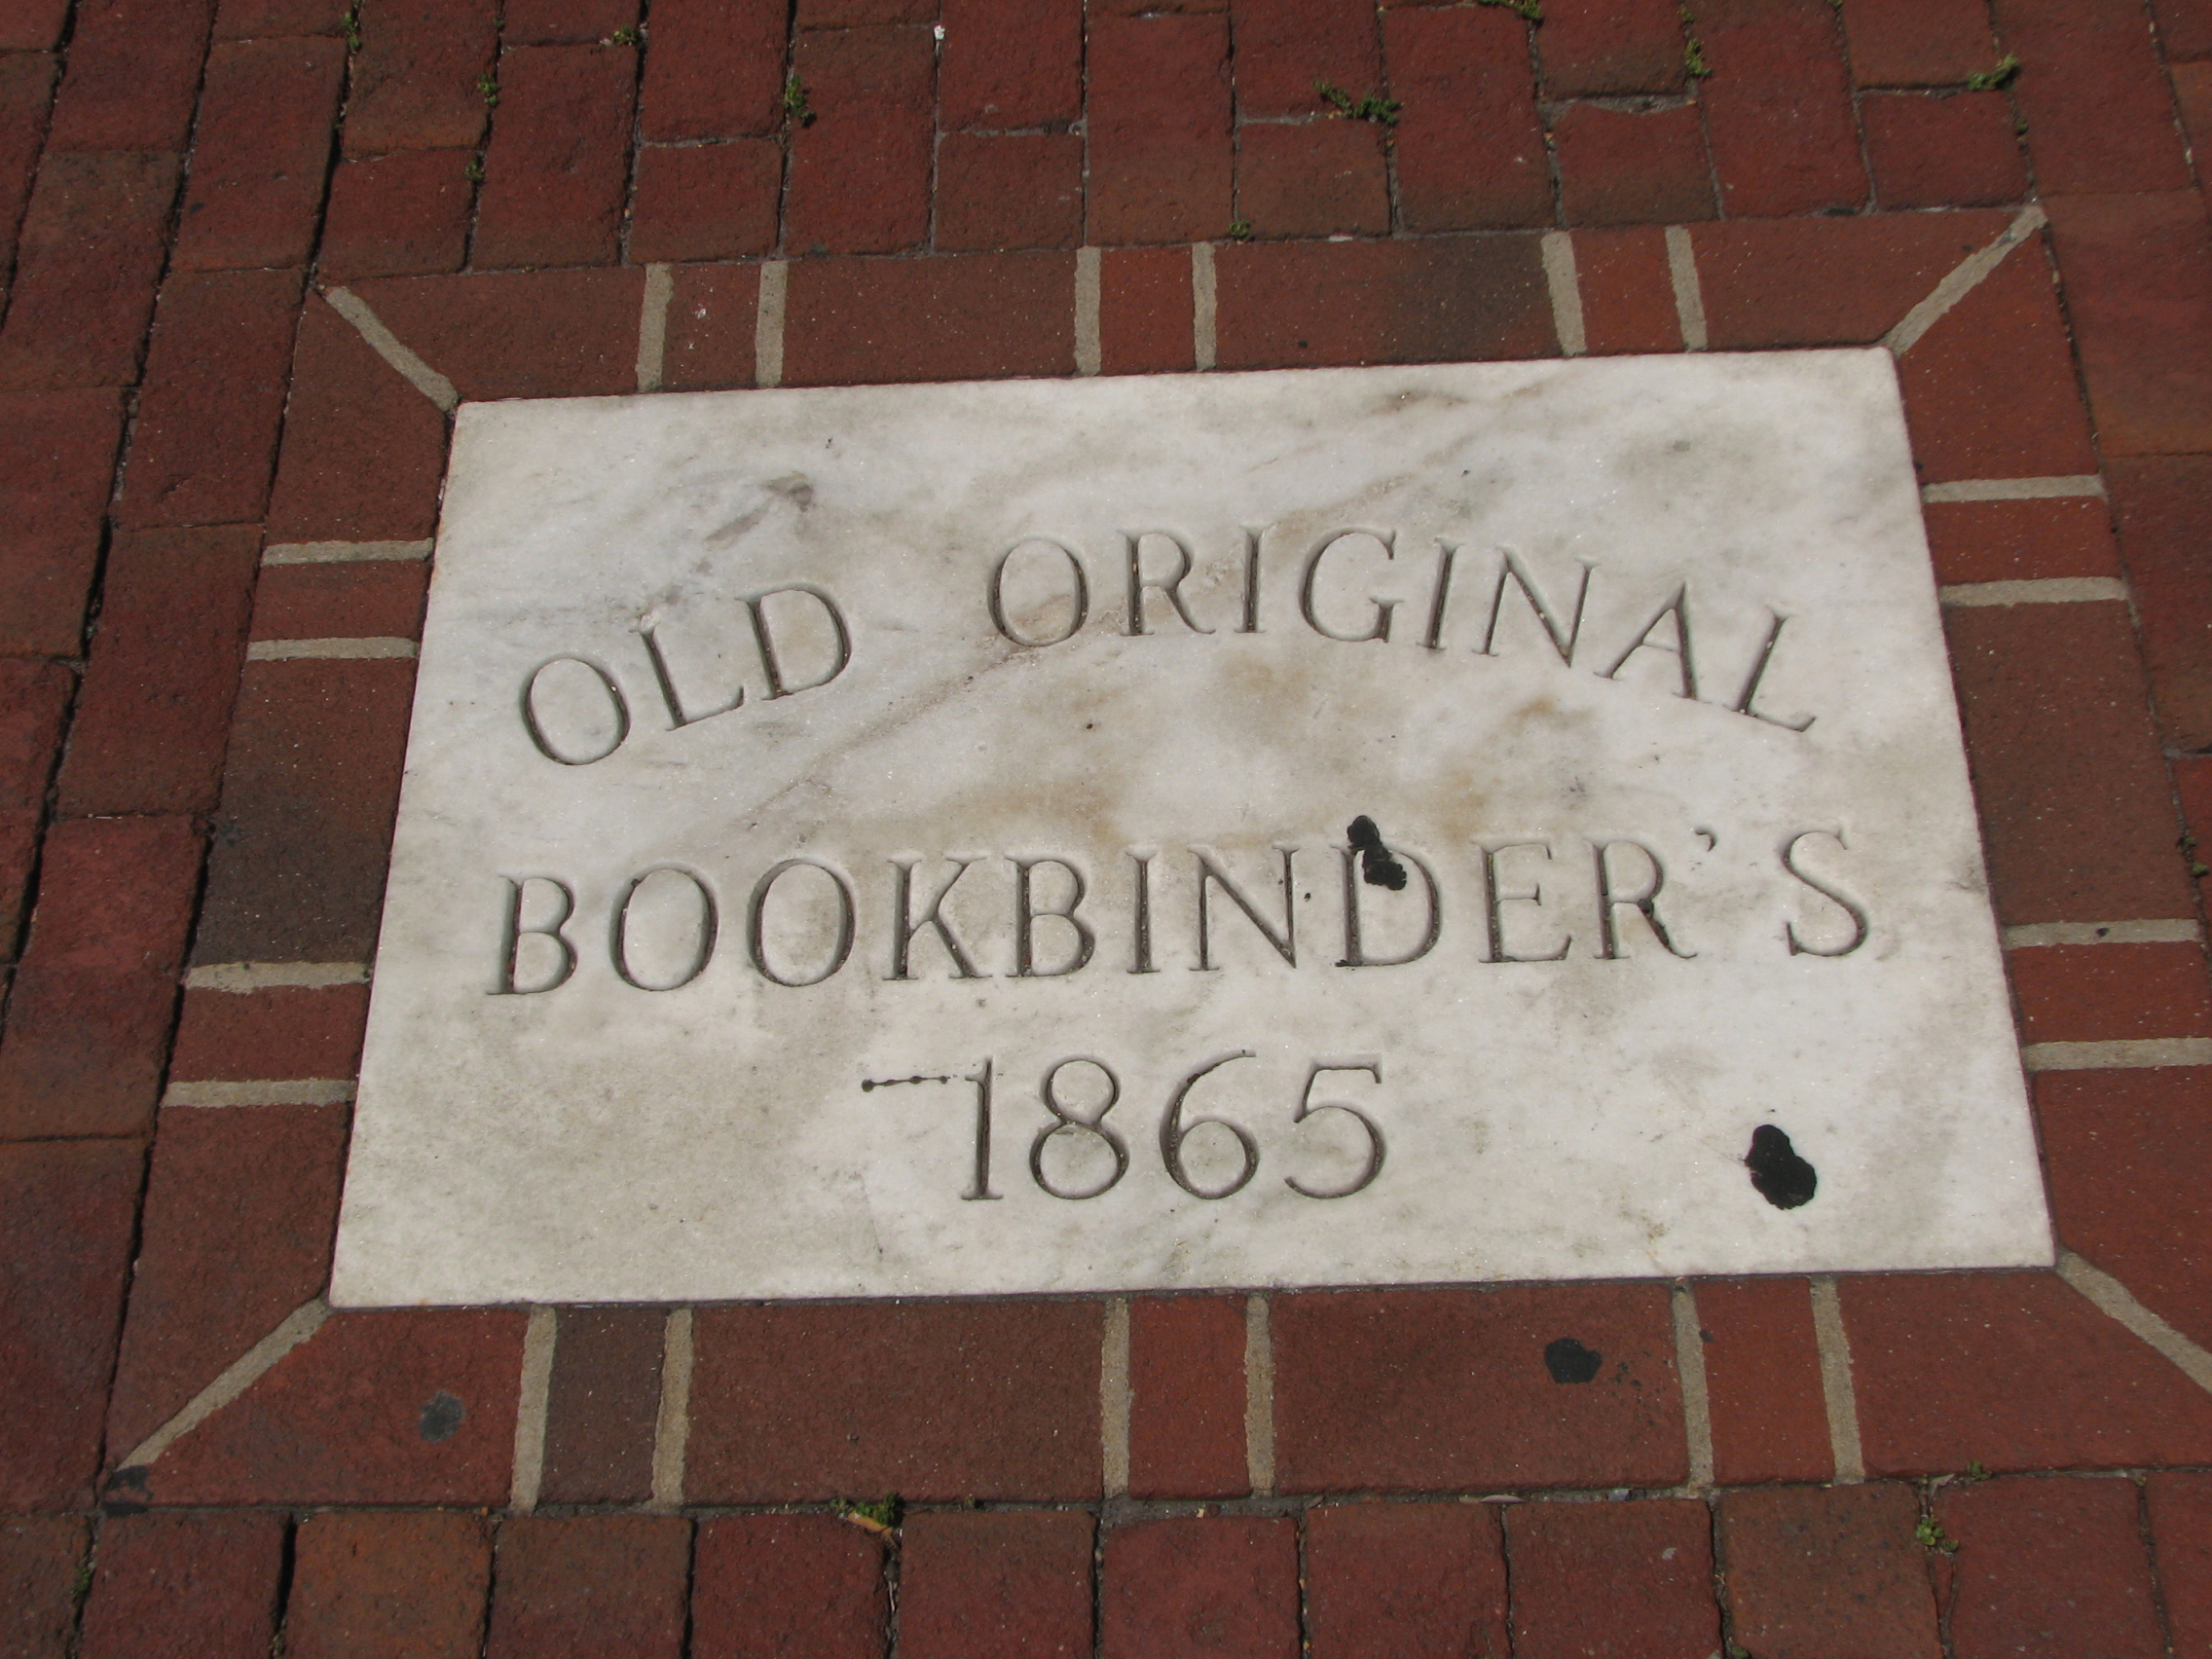 A plaque on the sidewalk in front of the restaurant claims origins that date to 1865.